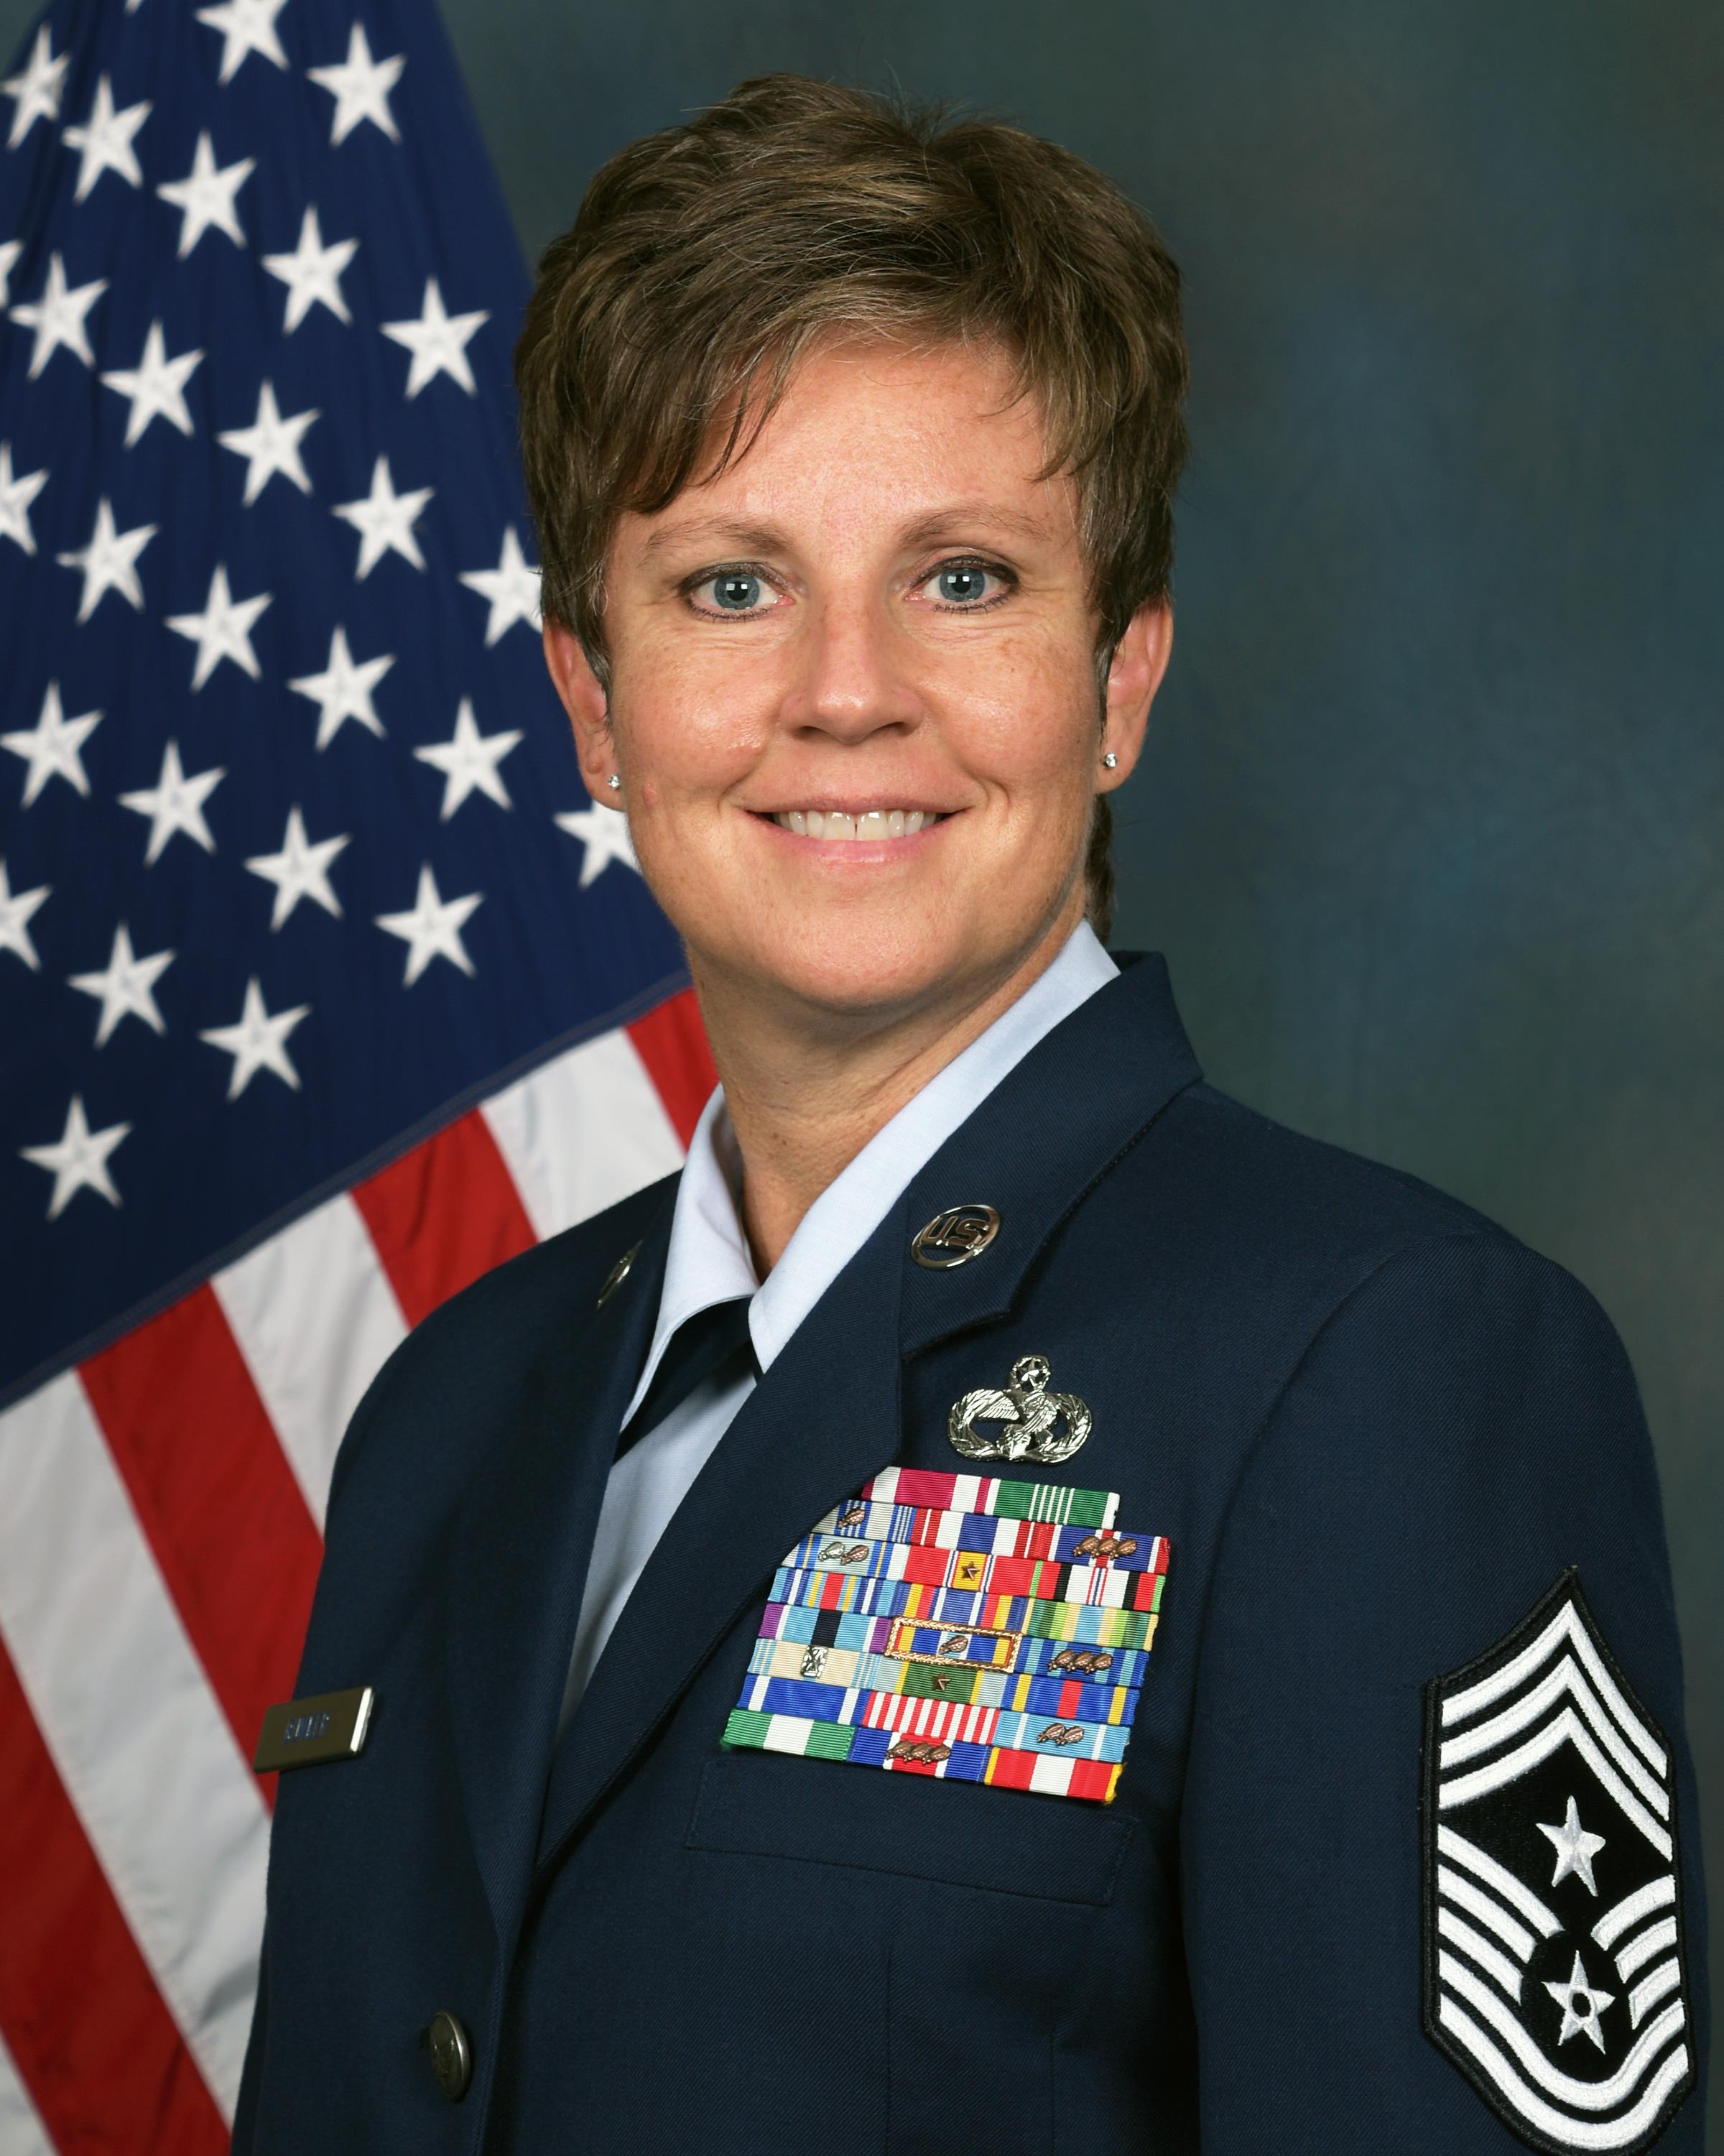 Official photograph for Ohio Air National Guard State Command Chief